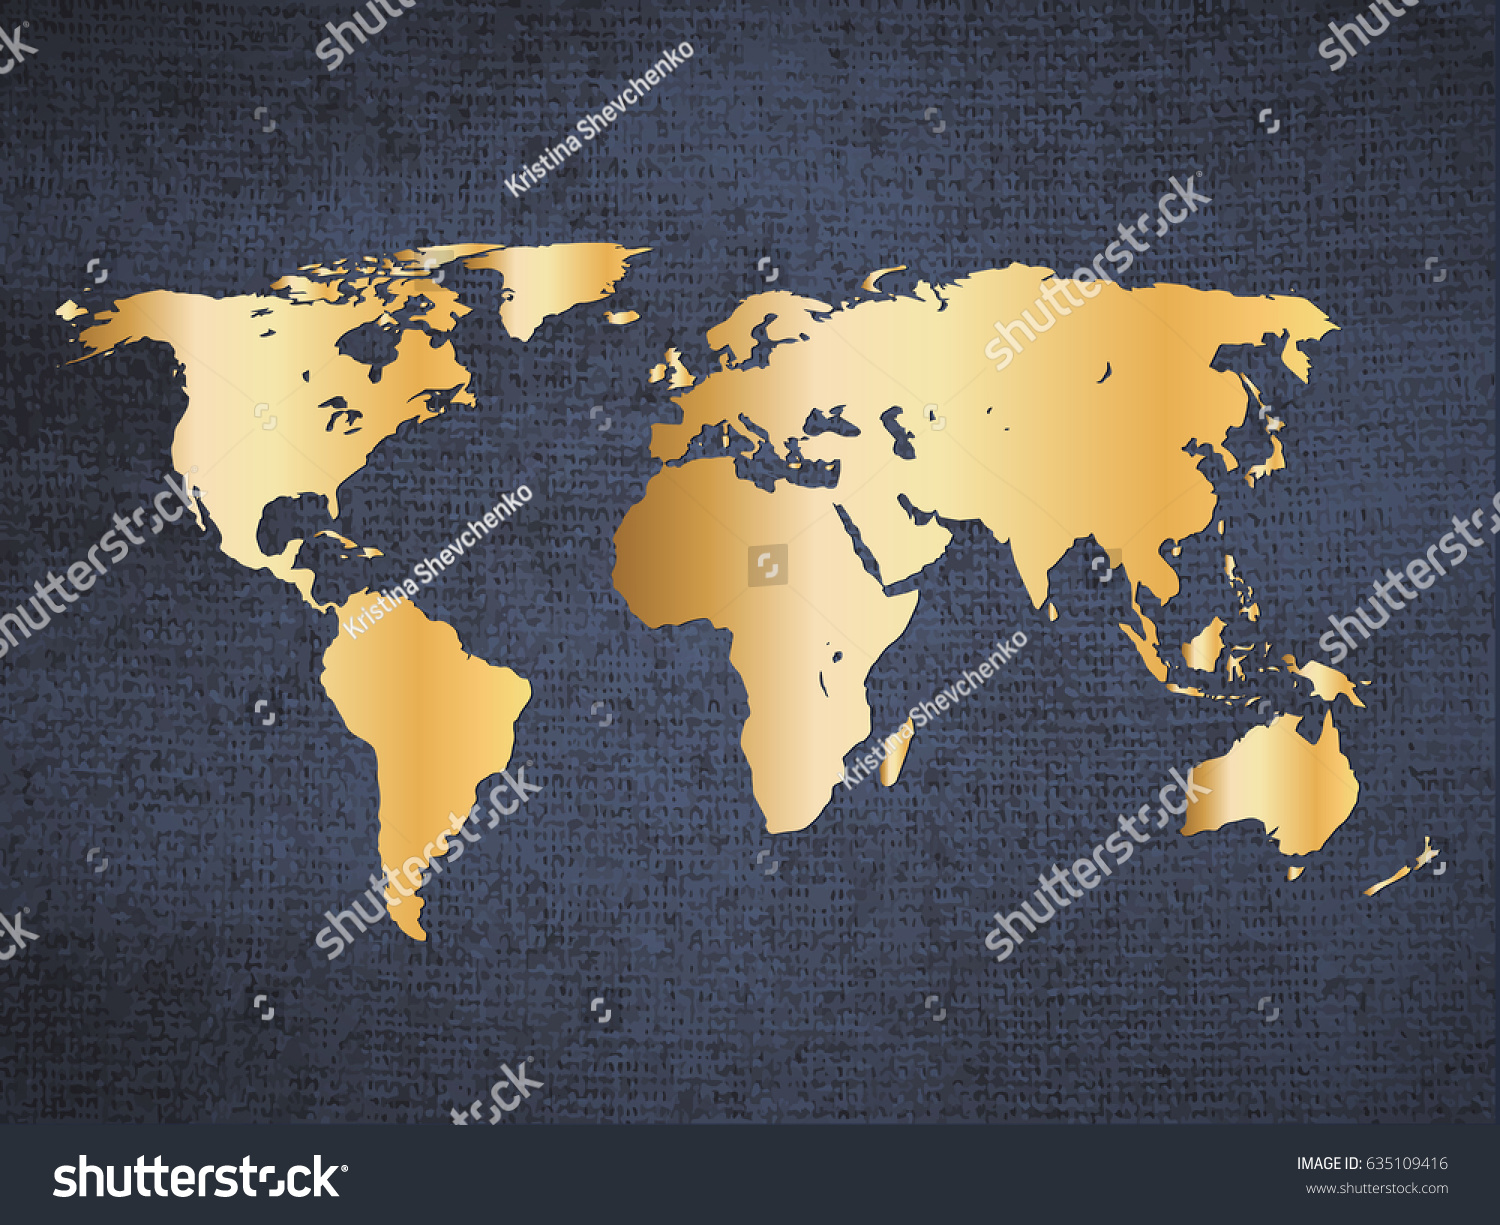 Gold world map on deep blue stock vector 2018 635109416 shutterstock gold world map on deep blue canvas background vector illustration poster gumiabroncs Gallery